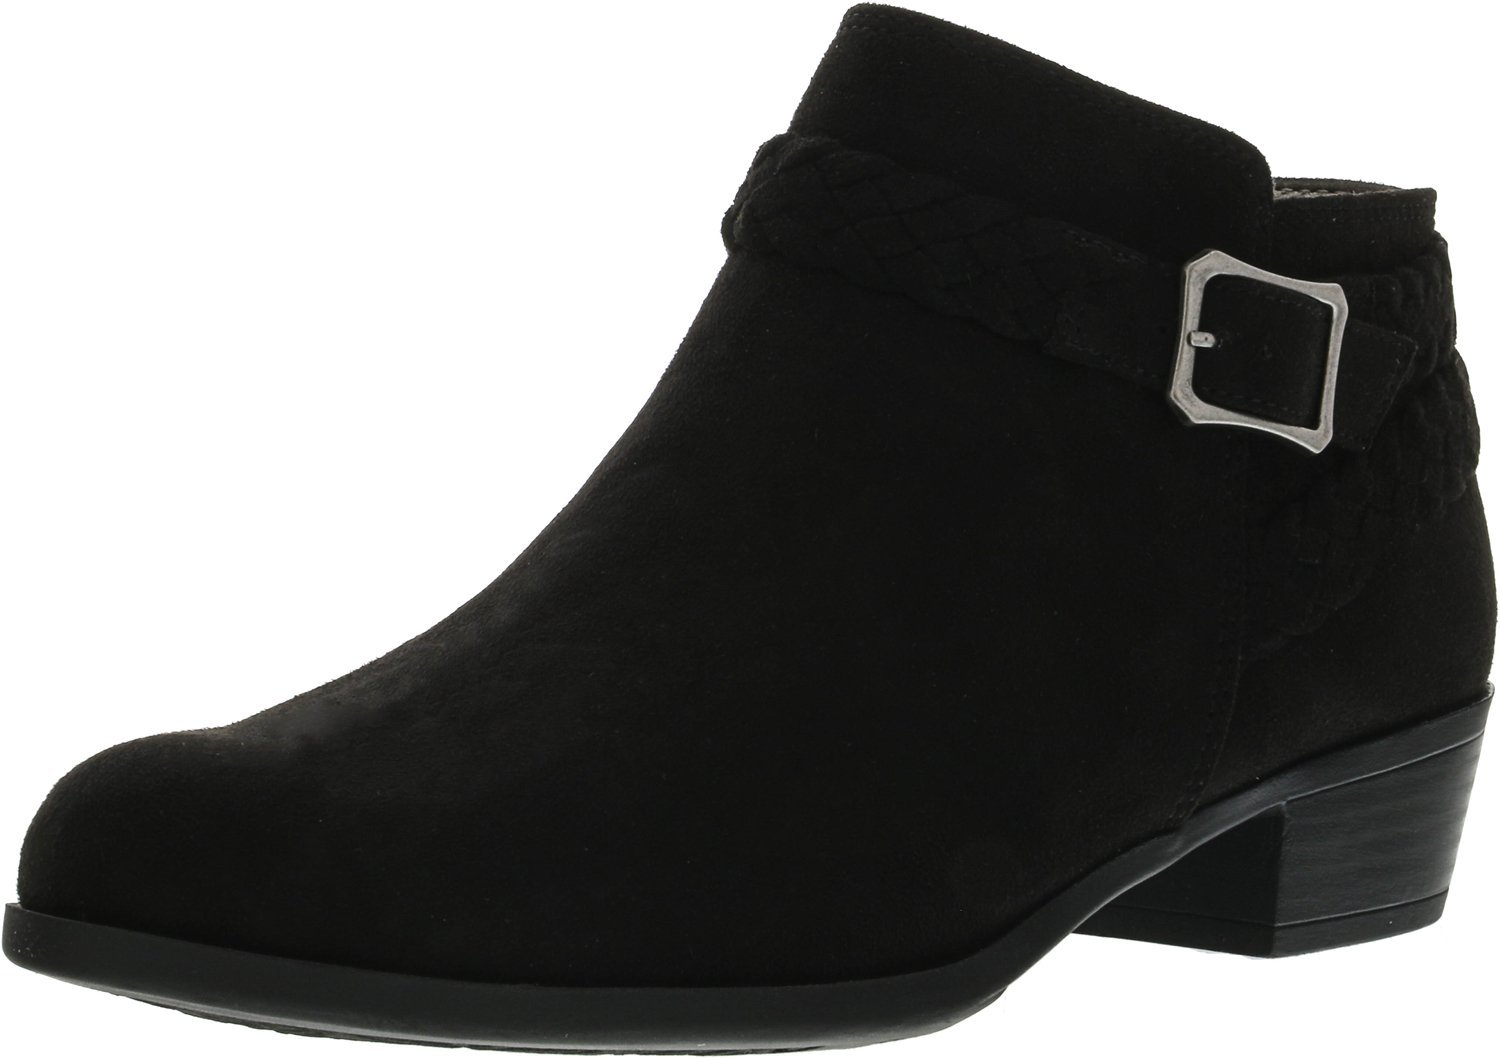 LifeStride Women's Adriana Ankle Bootie B075H31WLT 8.5 B(M) US|Black Micro